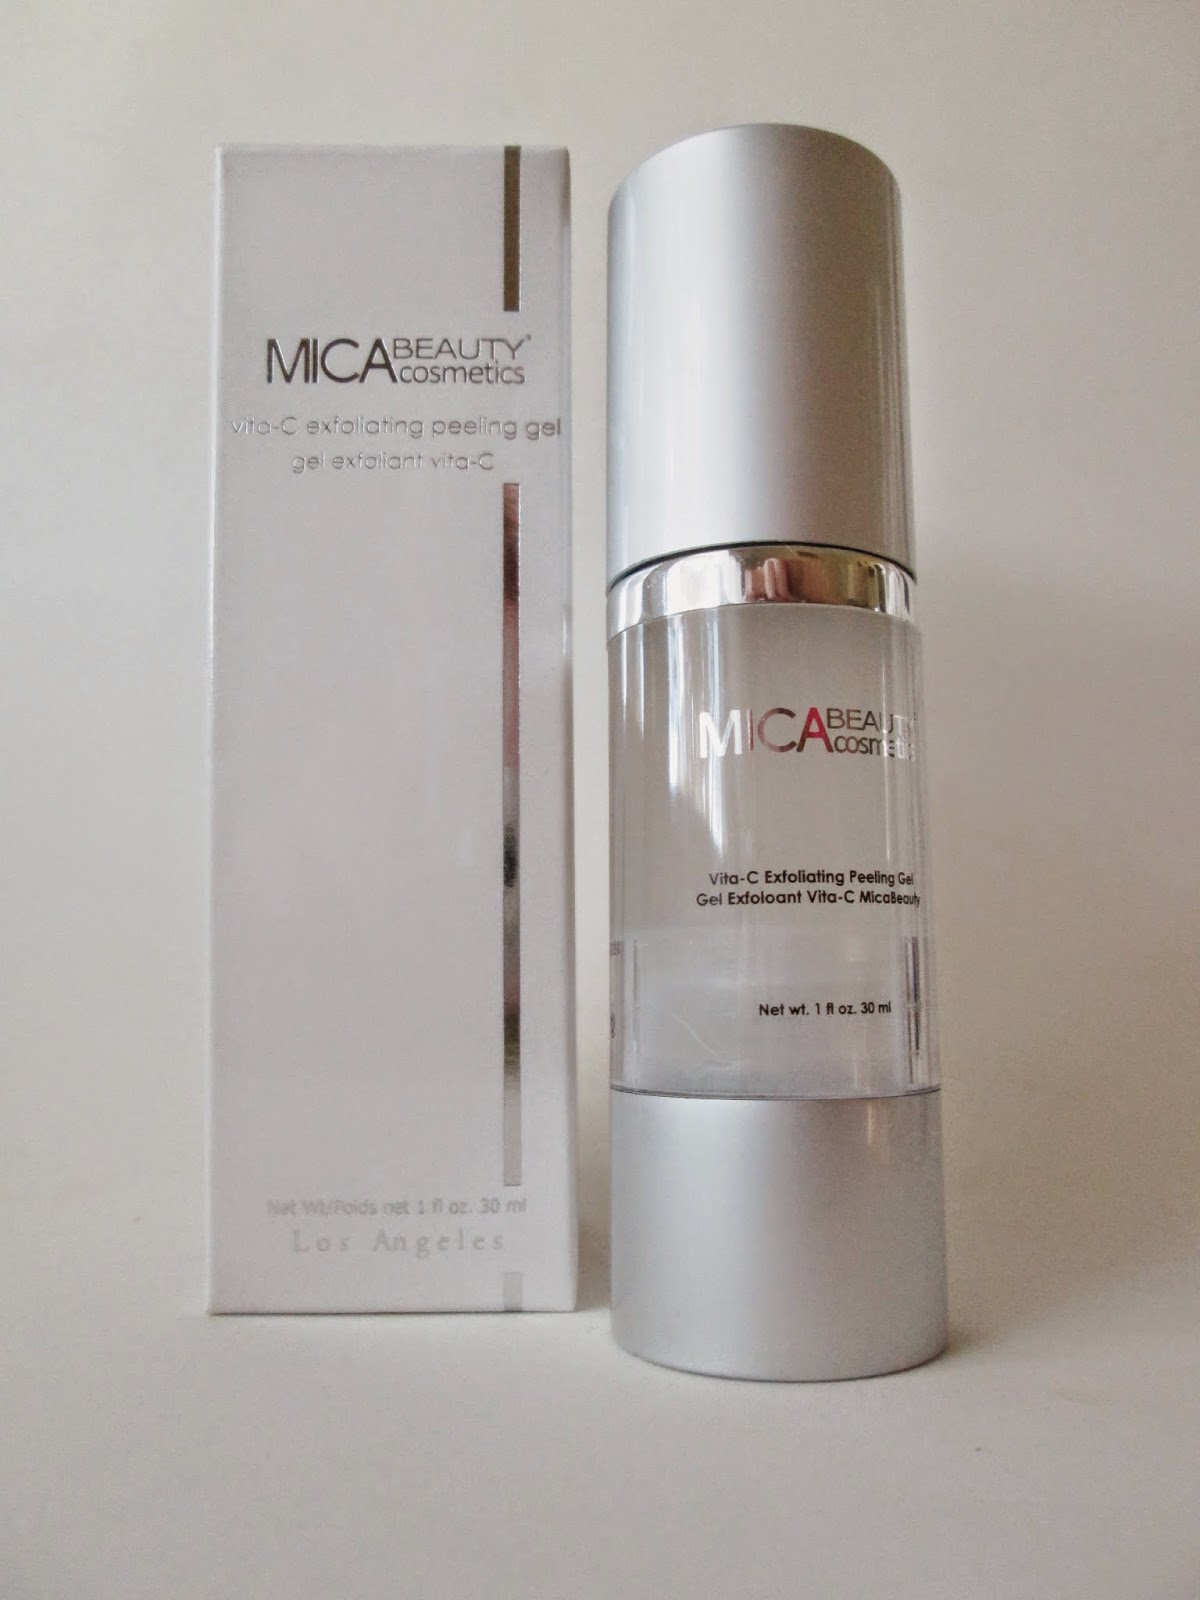 MICA Beauty Cosmetics Vita-C Exfoliating Peeling Gel in a One Ounce Pump